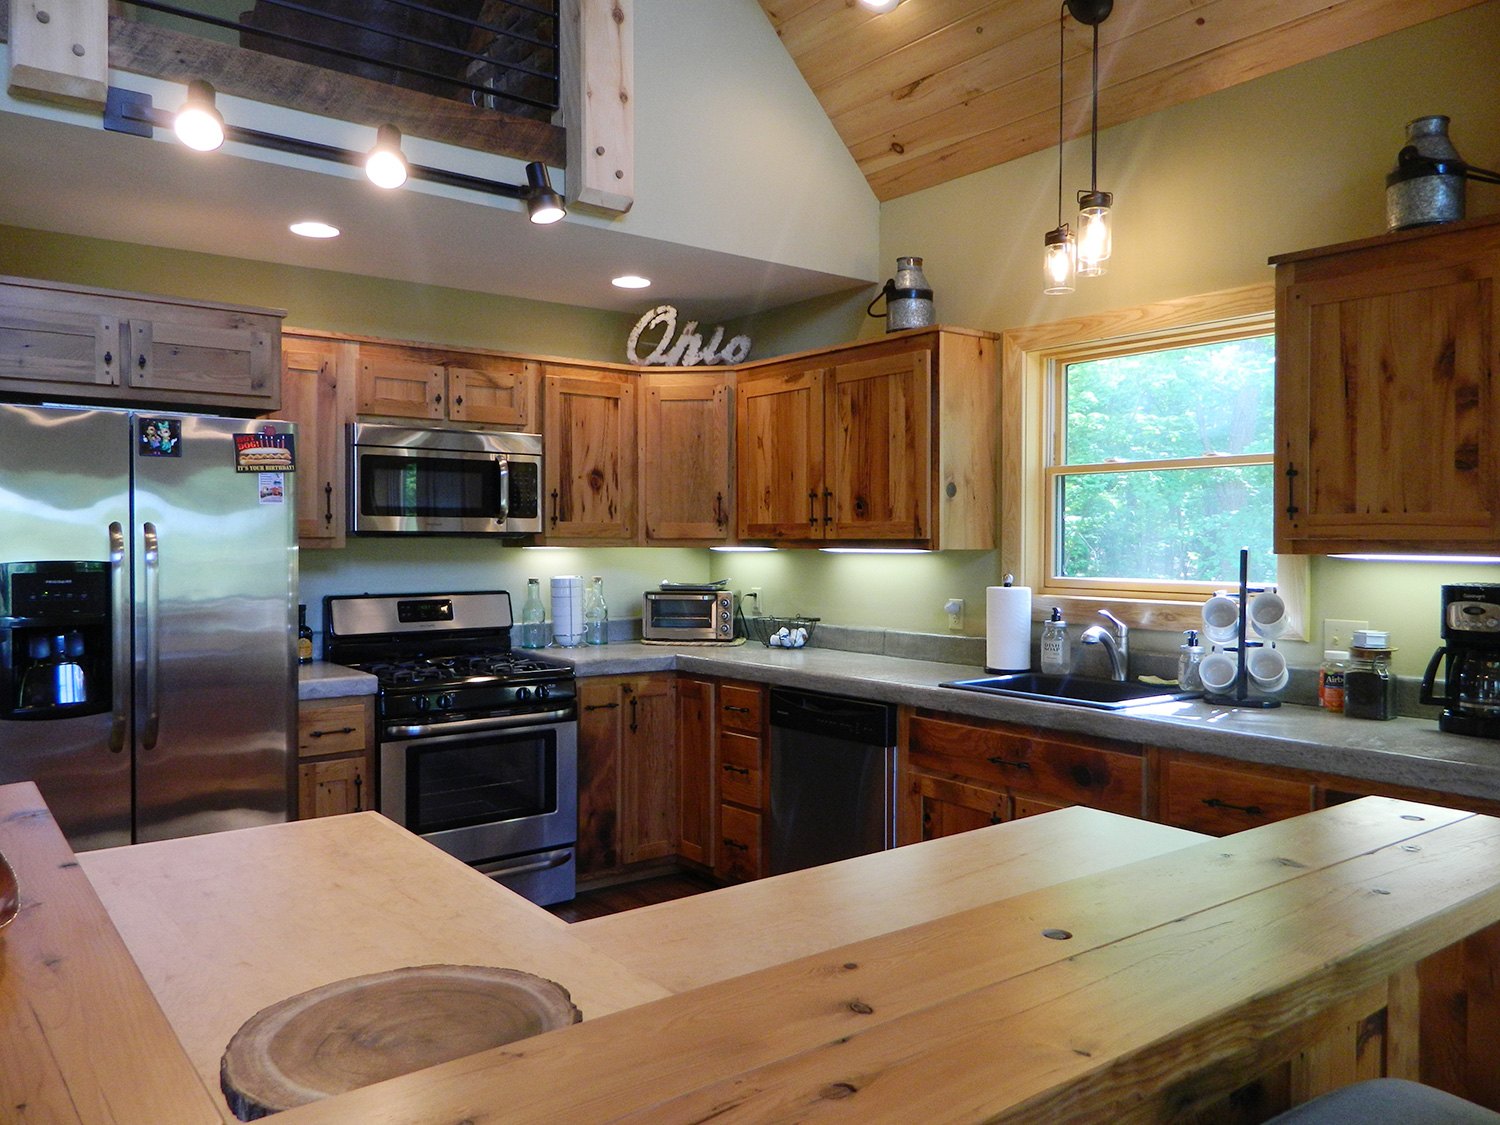 amish made kitchen cabinets ikea lighting ellicottville chalet photos lofty mountain homes